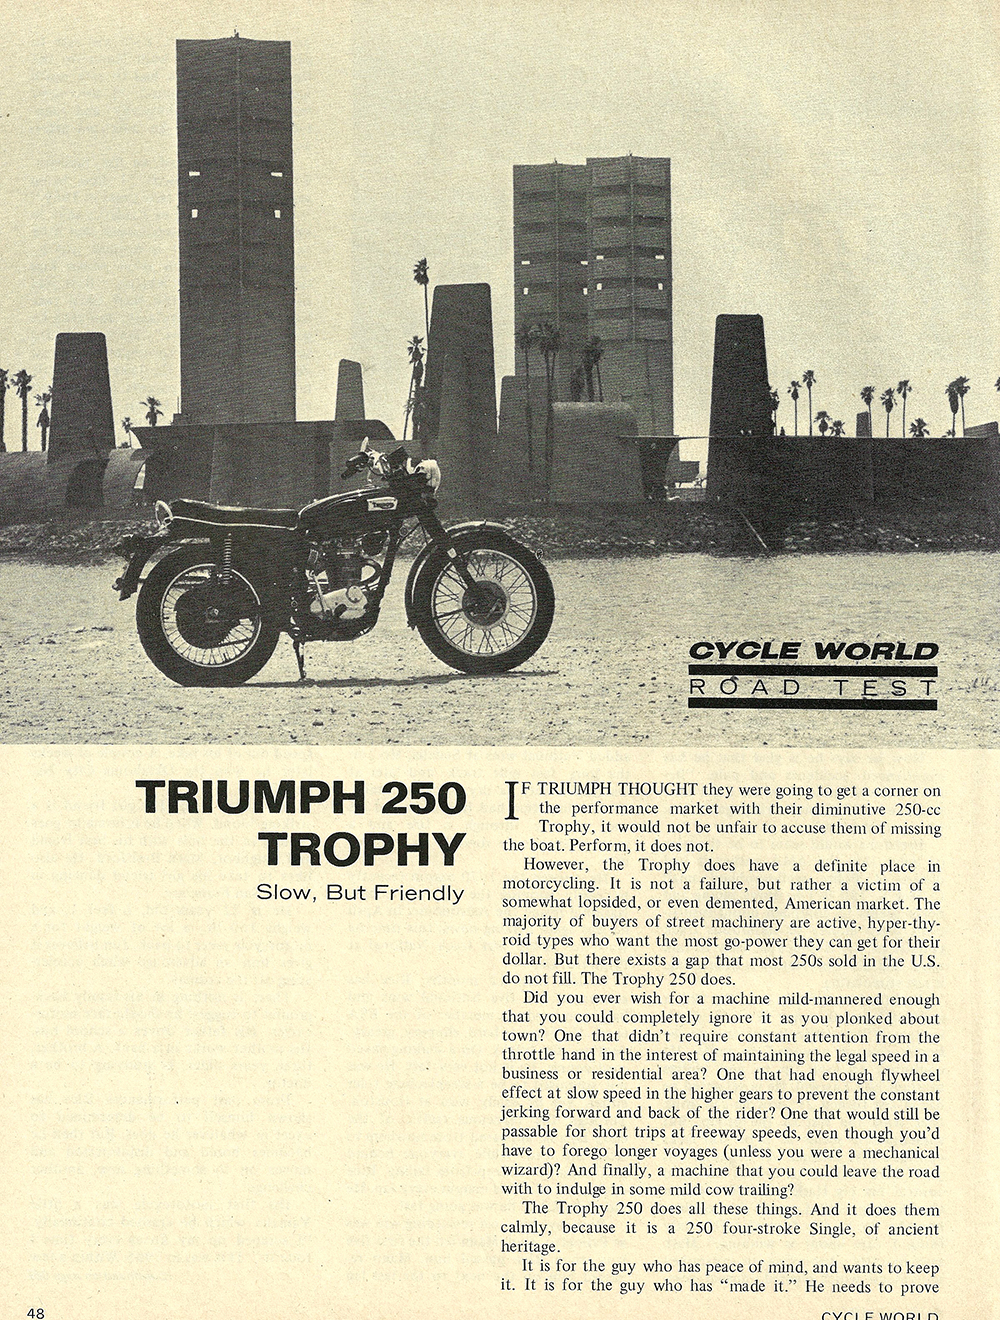 1970 Triumph 250 Trophy road test 01.jpg